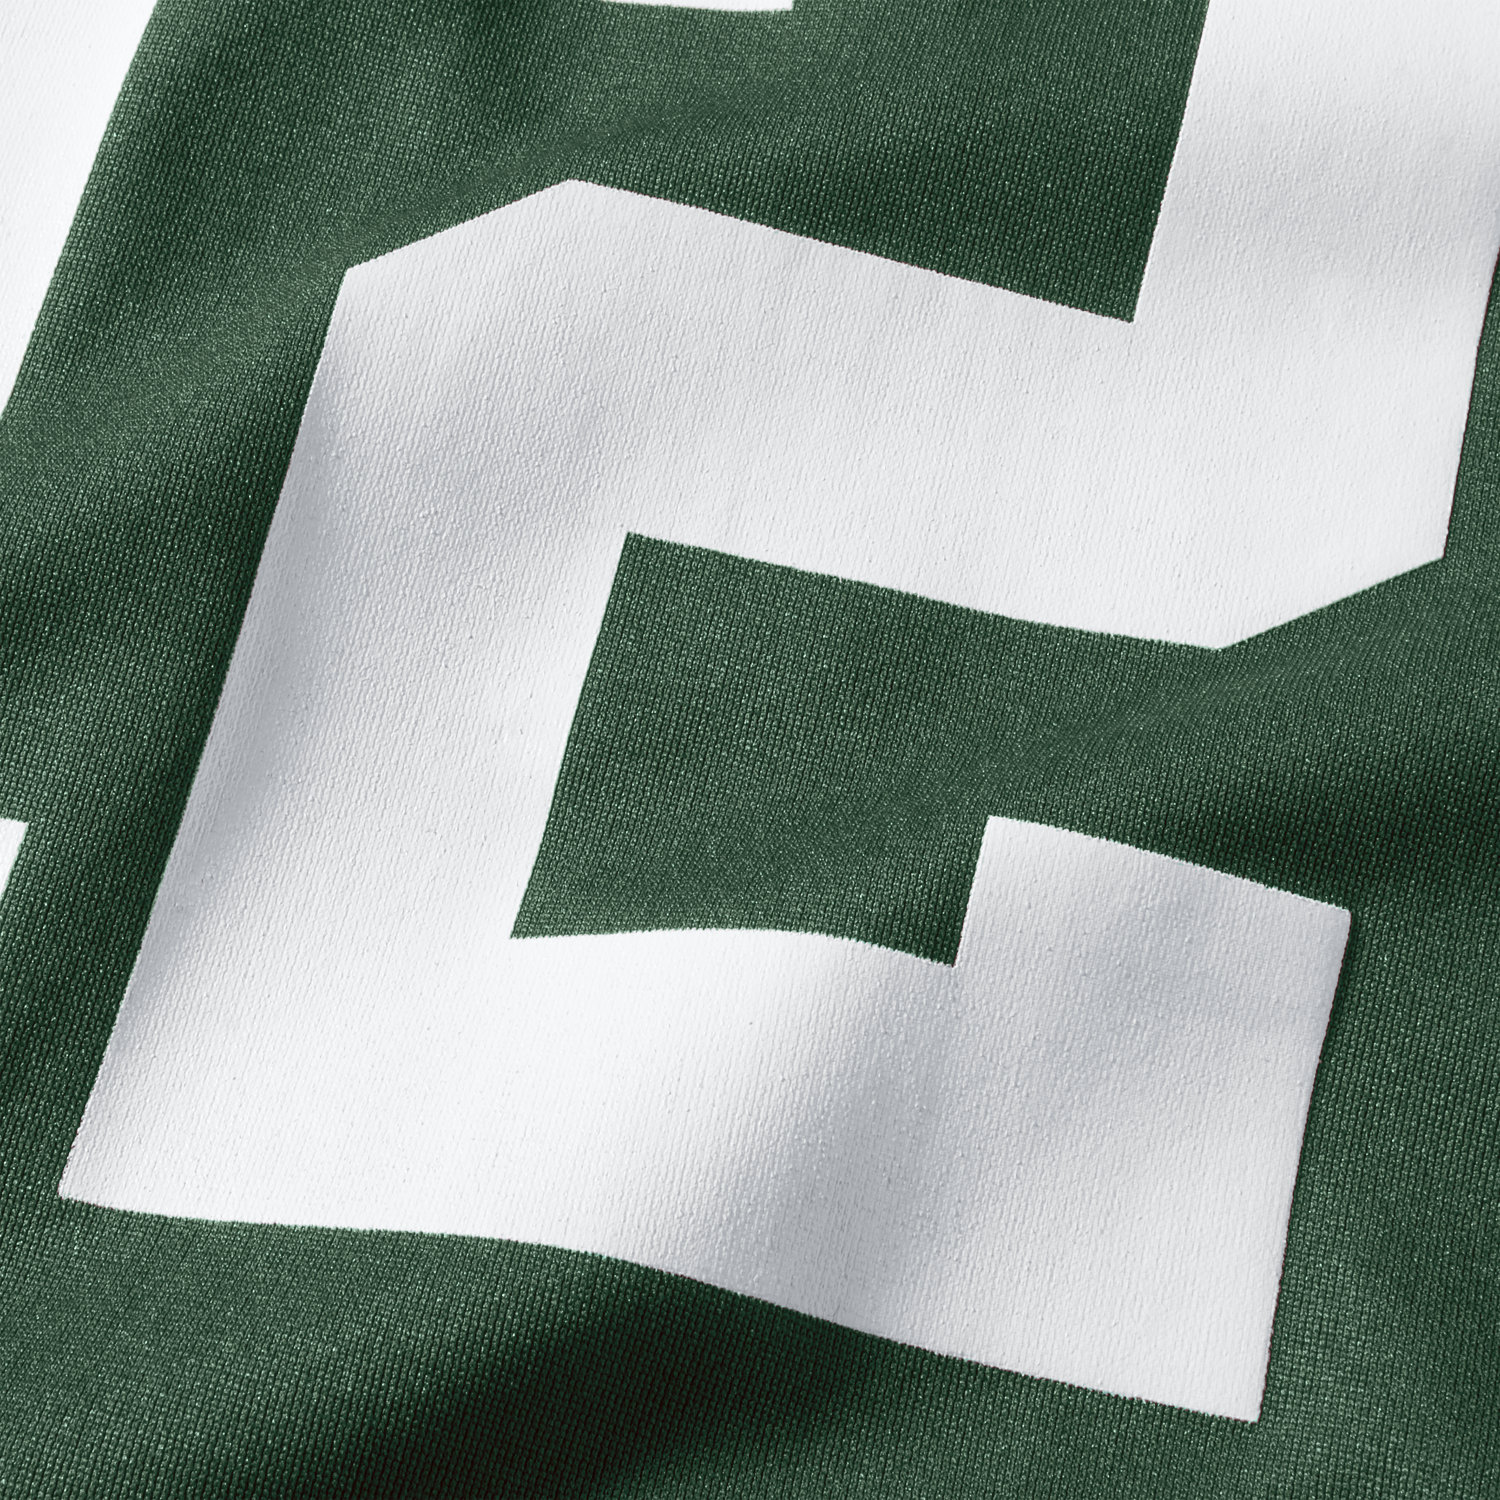 b46e0629b32 ... 12 NFL Green Bay Packers (Aaron Rodgers) Mens Football Home Game Jersey.  Nike .